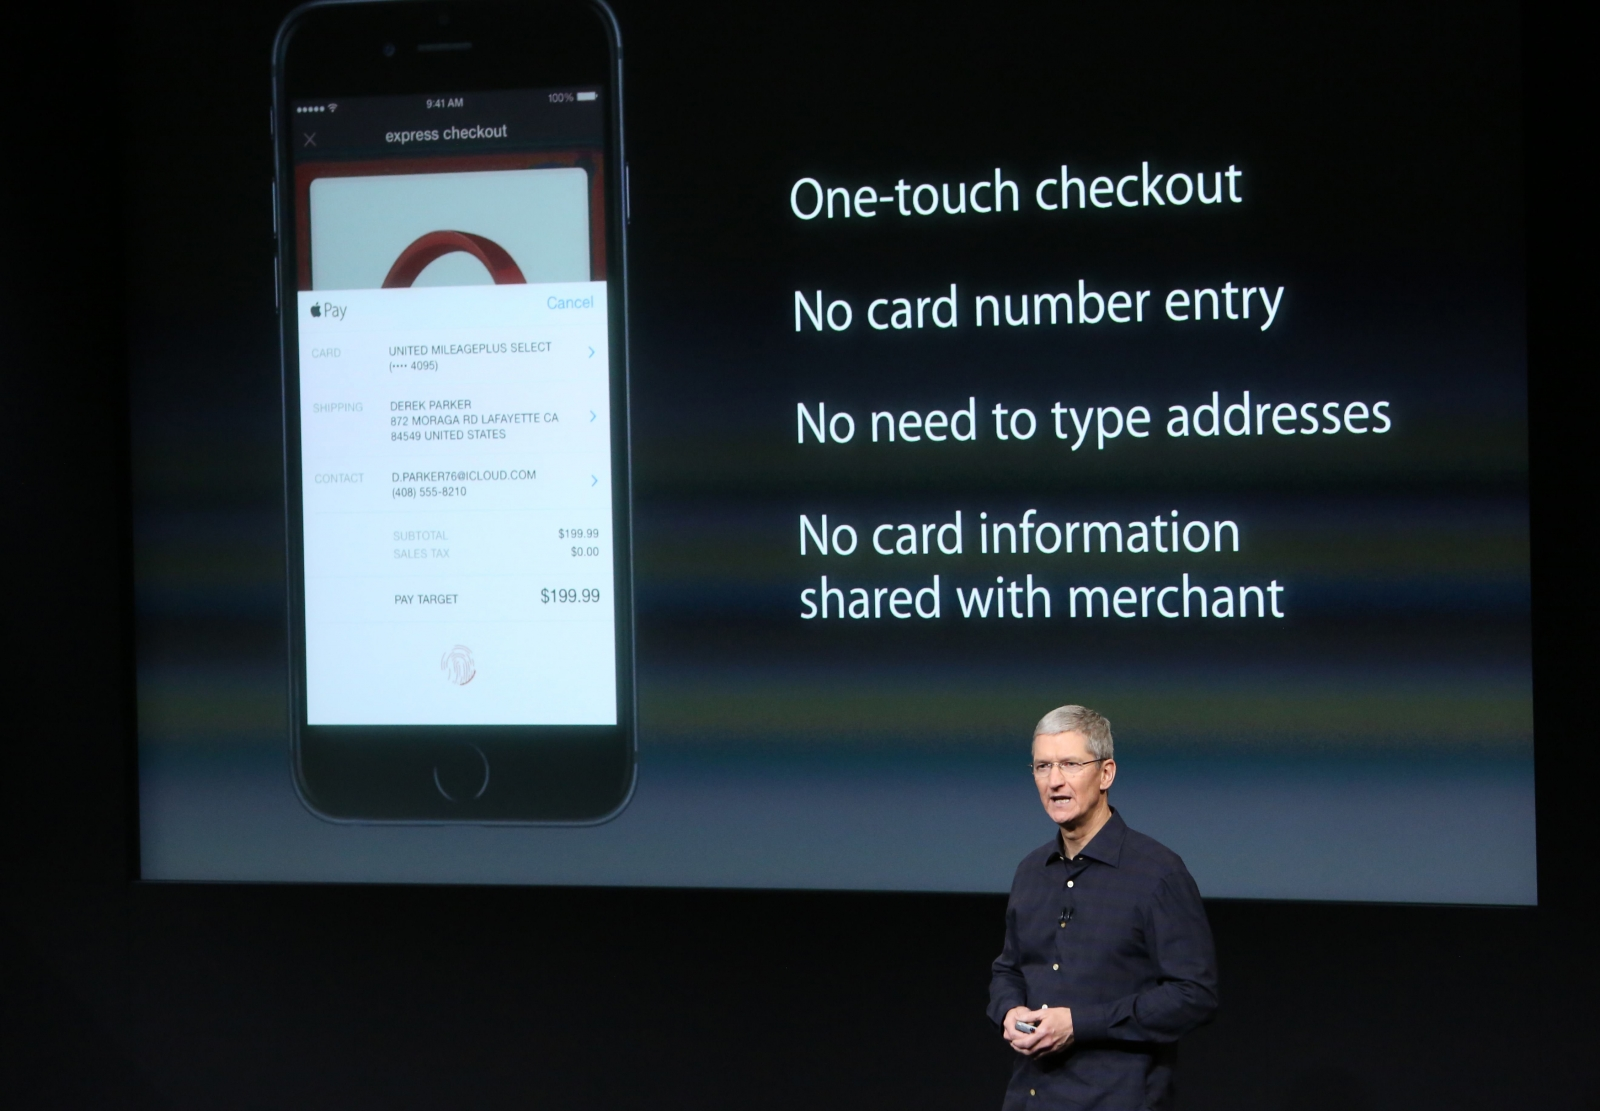 Apple CEO Tim Cook speaks about the Apple Pay service during a presentation at Apple headquarters in Cupertino, California October 16, 2014